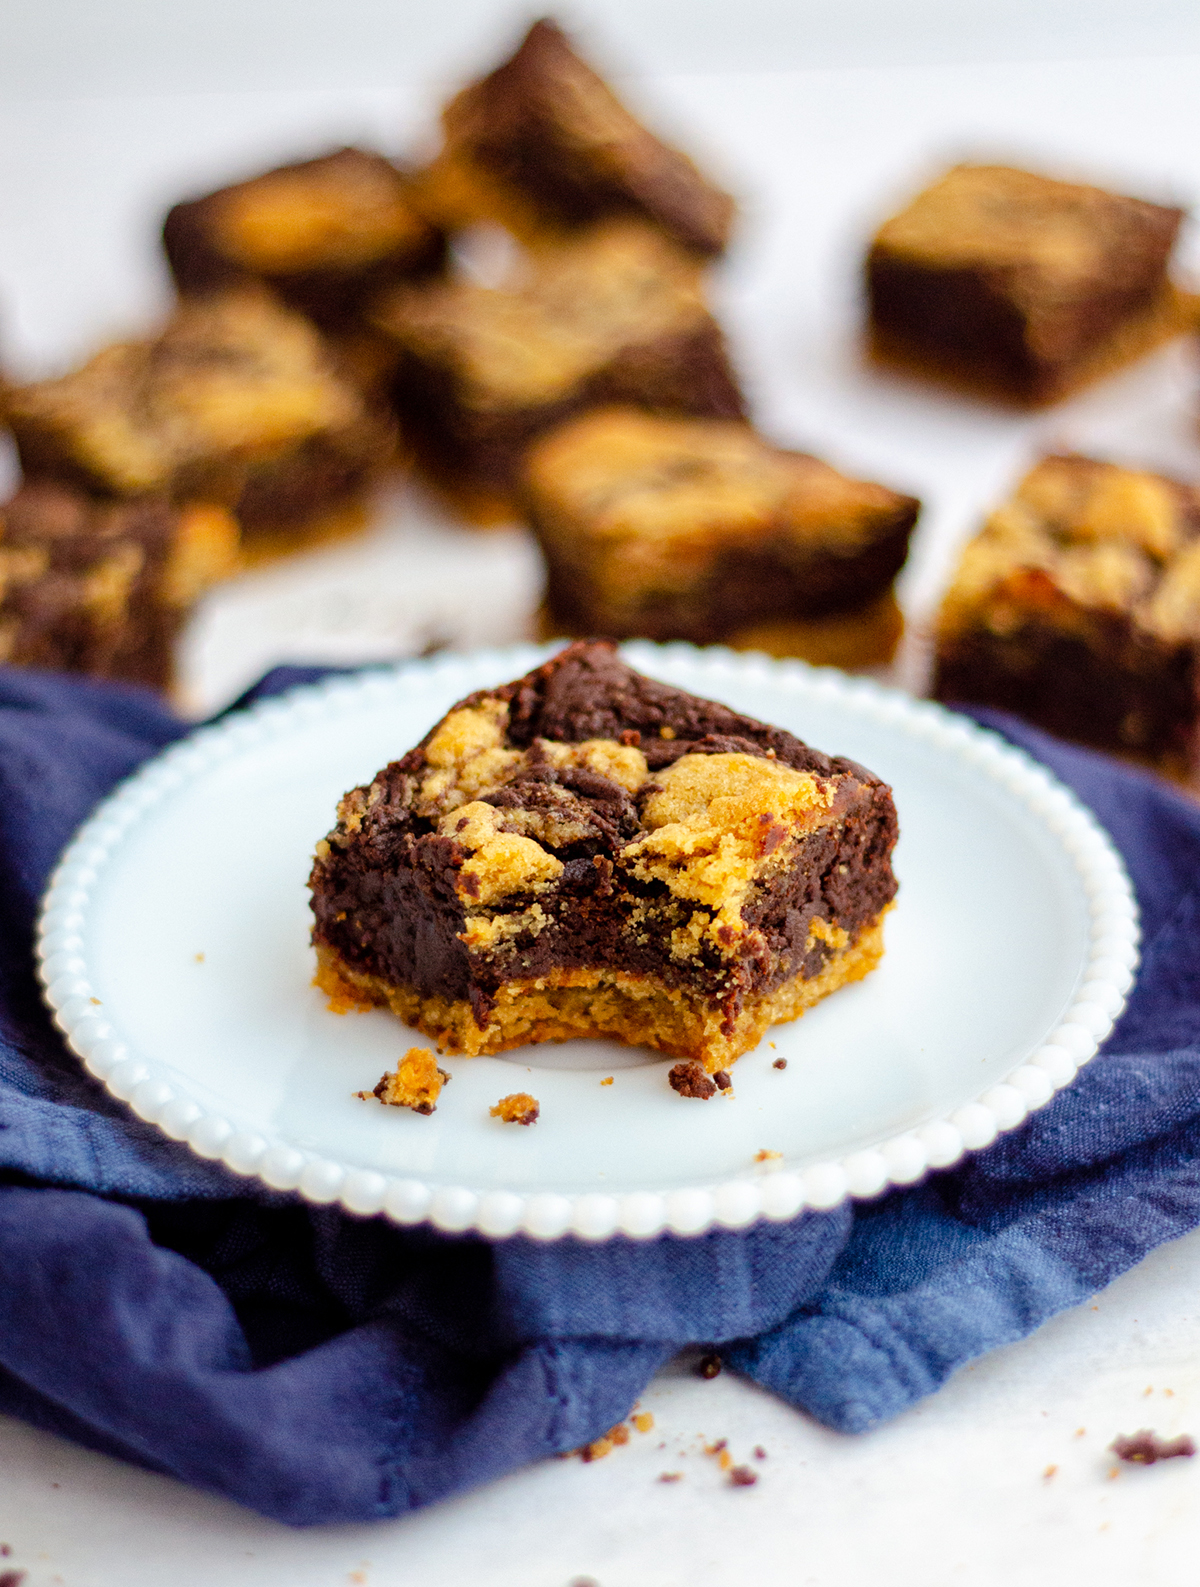 peanut butter cookie brownie sitting on a plate with a bite taken out of it and more brownies in the background